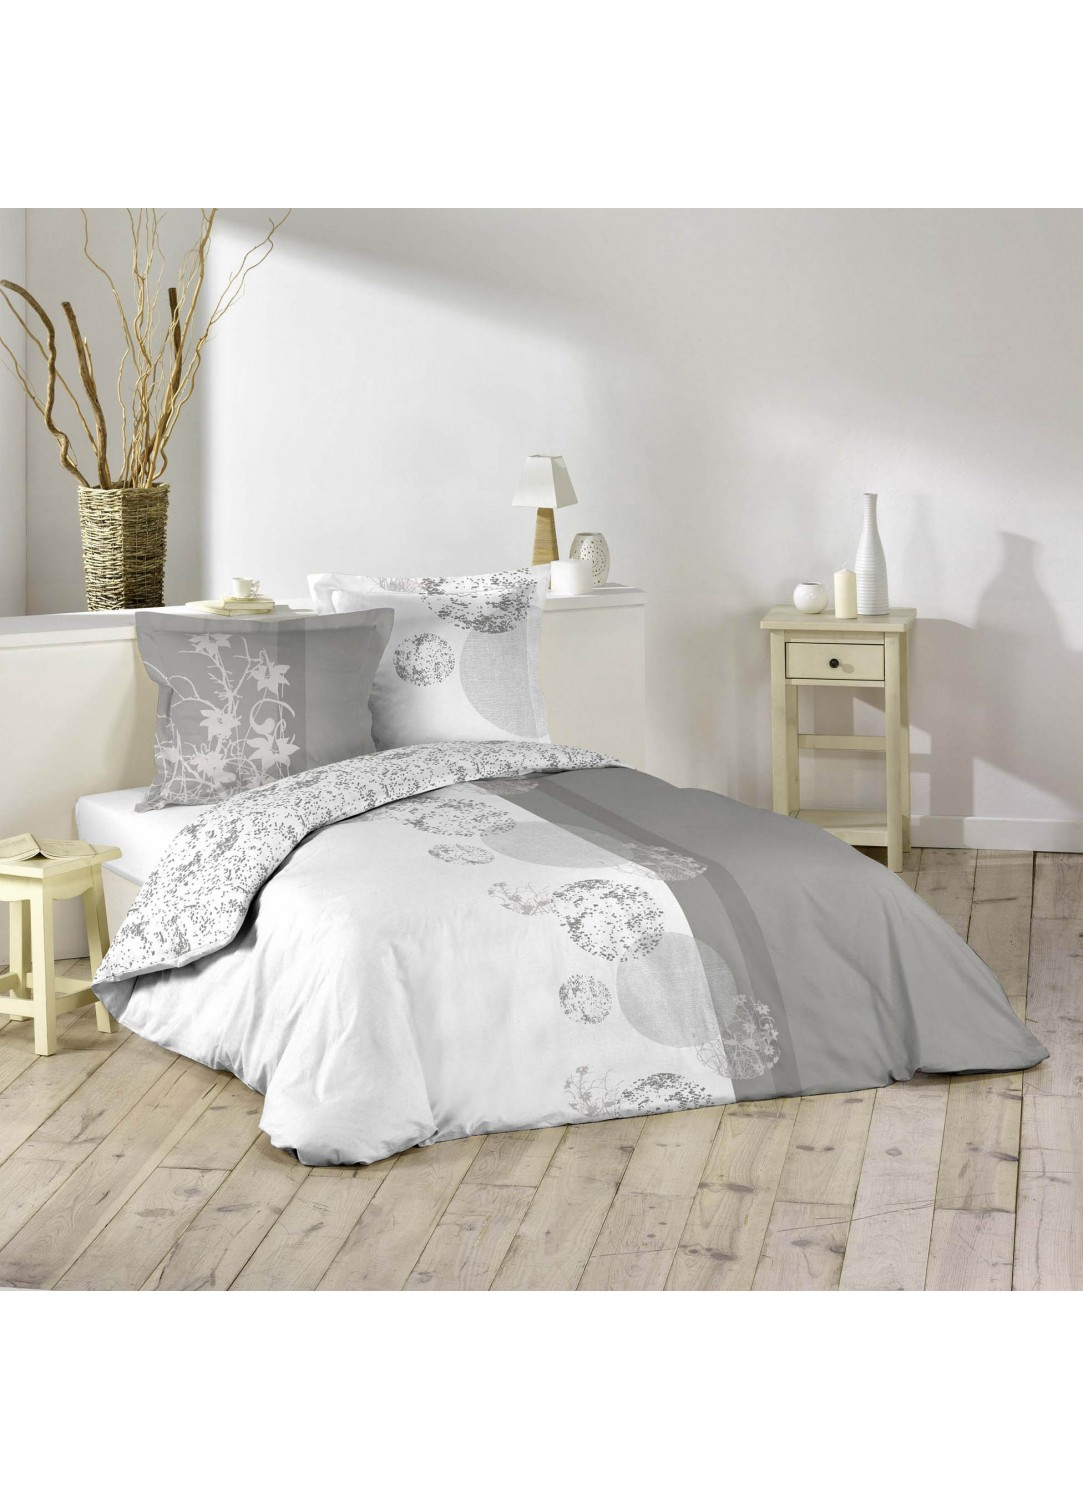 parure de lit imprim e 2 personnes bubbles blanc et. Black Bedroom Furniture Sets. Home Design Ideas